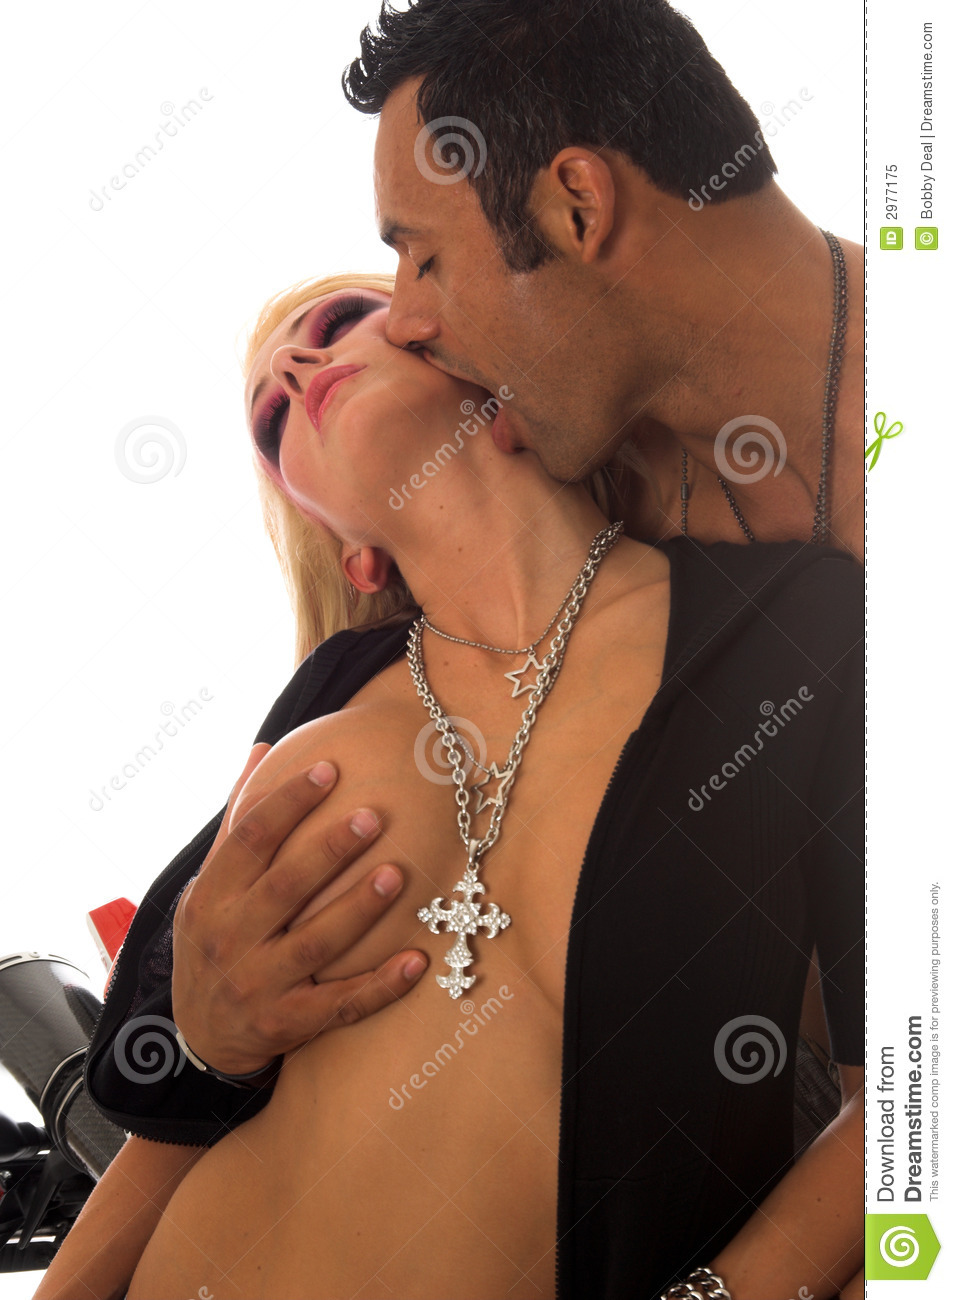 Sexy Couple Kissing 57